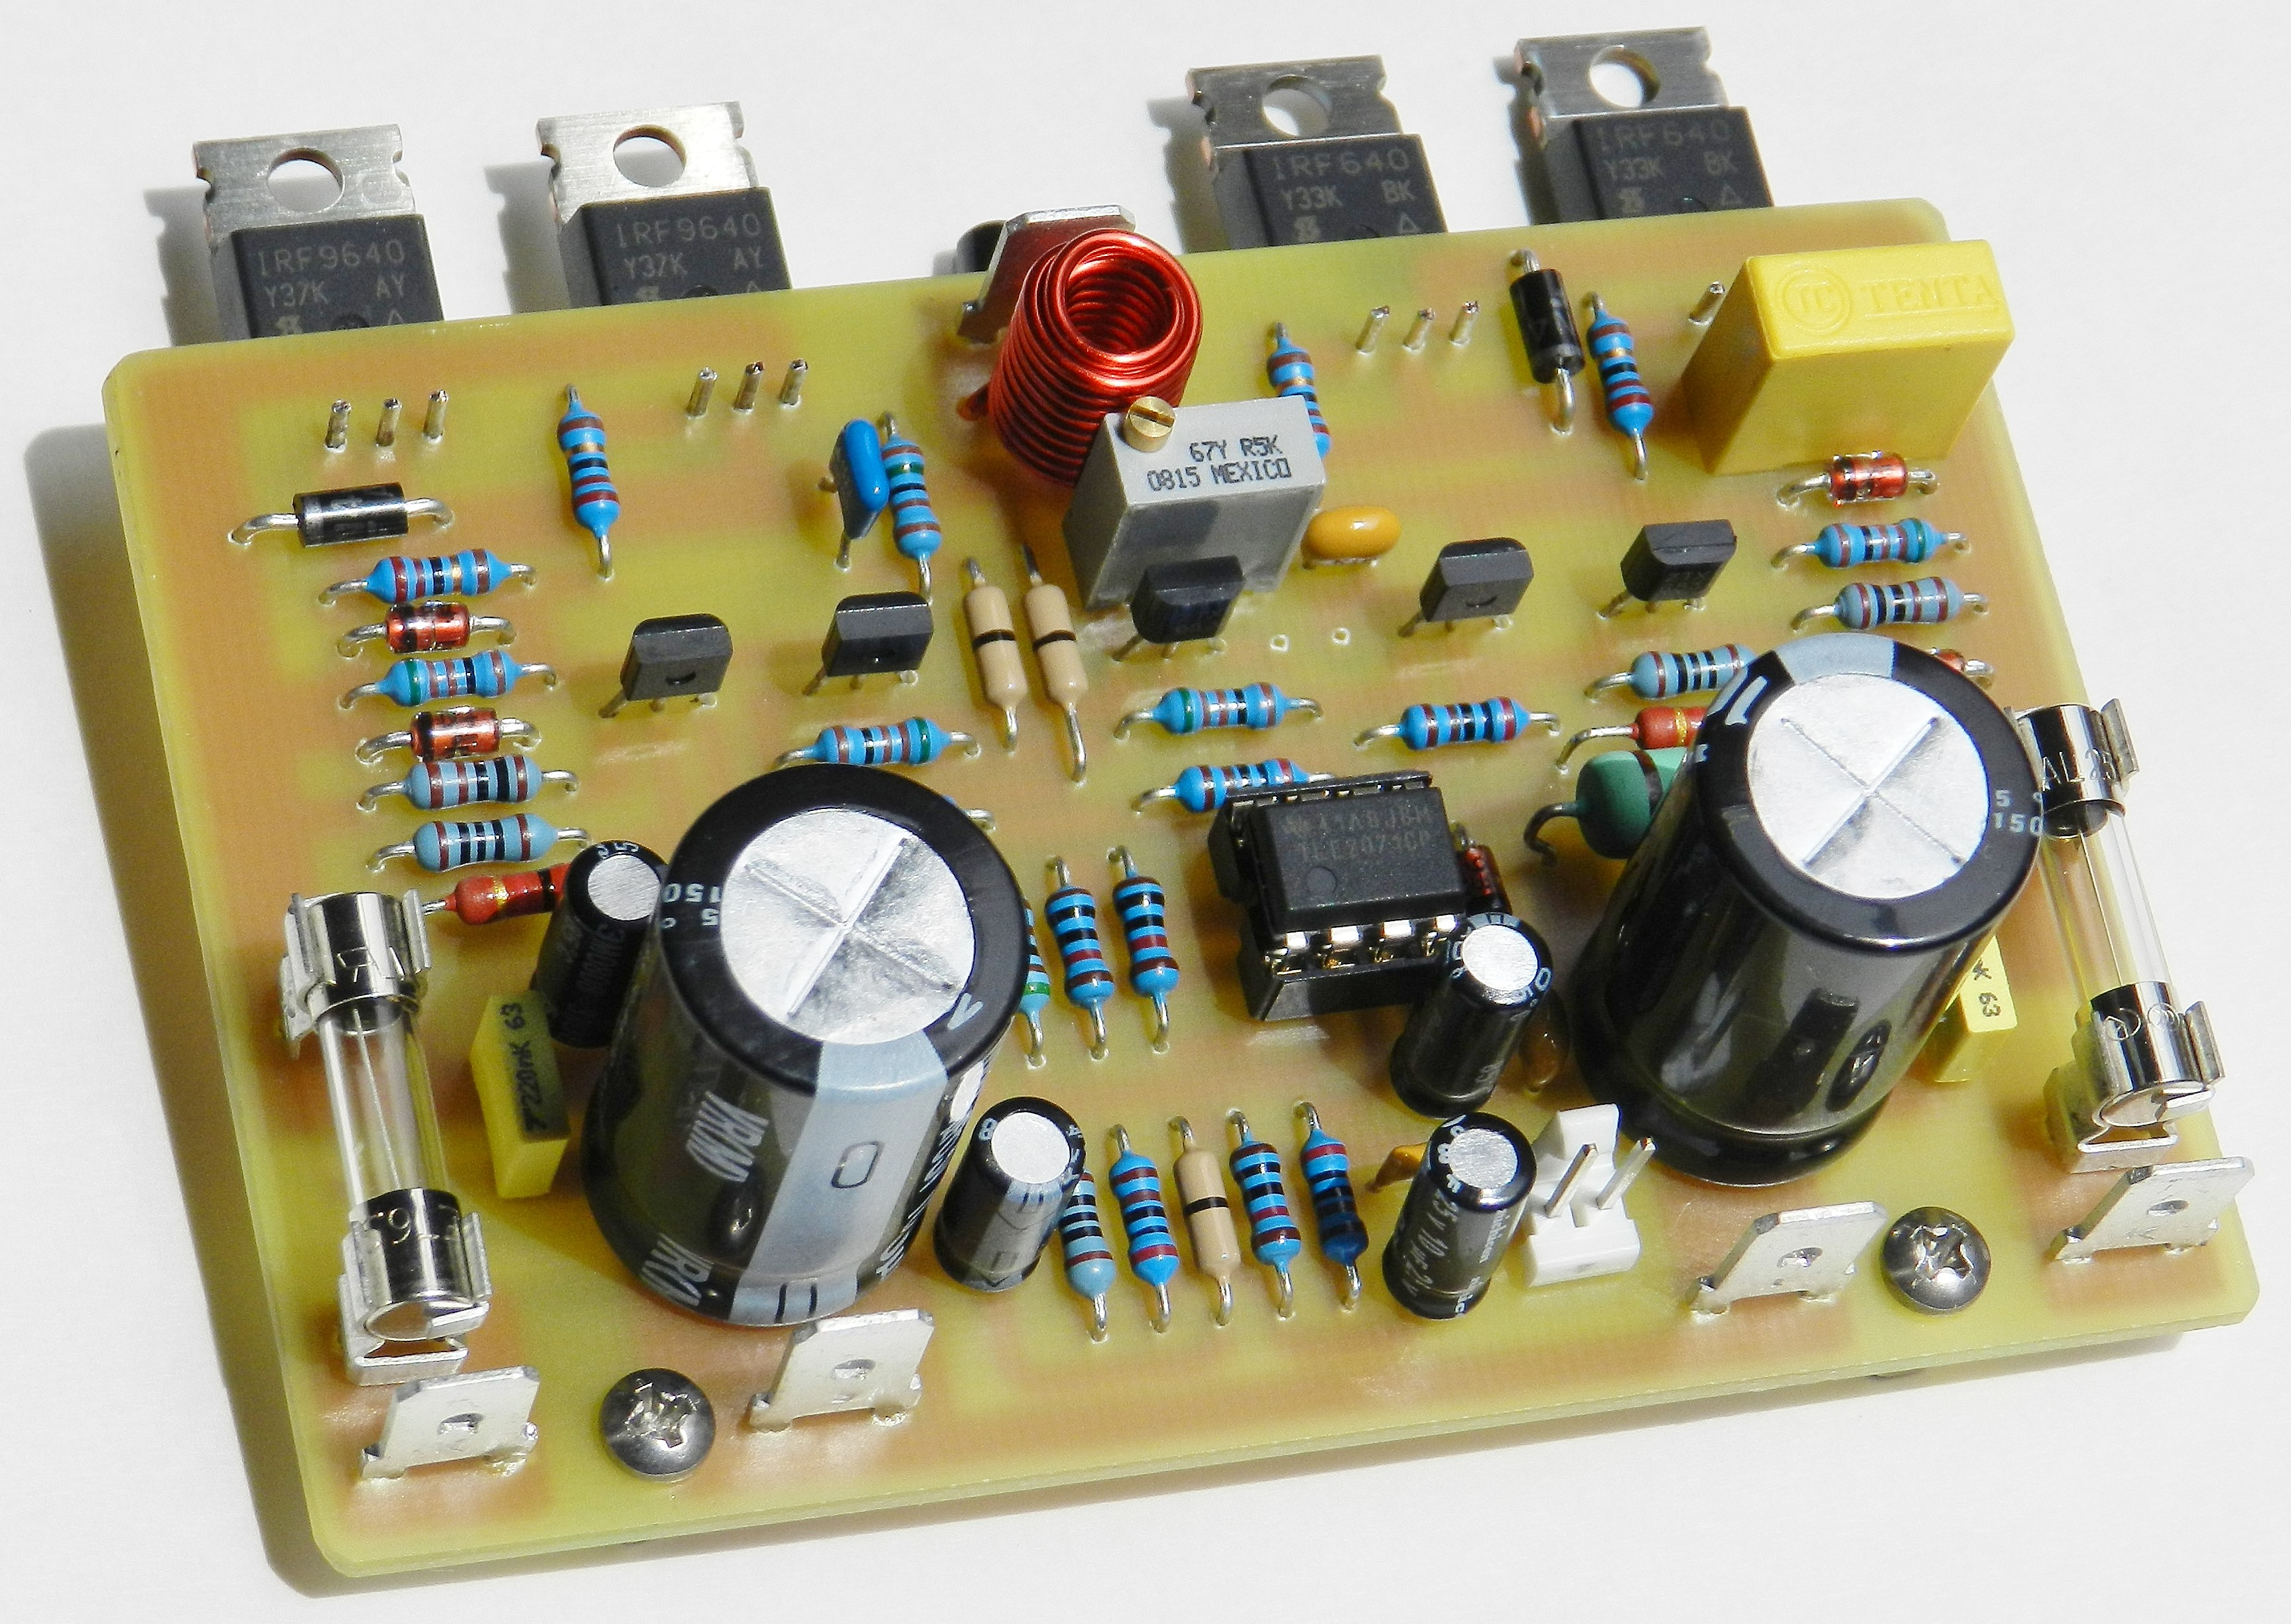 Project 62 Buildaudioamps Operational Amplifier Basics Electrical Engineering Is The First In Series Of Audio Power Projects That Uses An Op Amp Front End Input Stage This Based On A Build